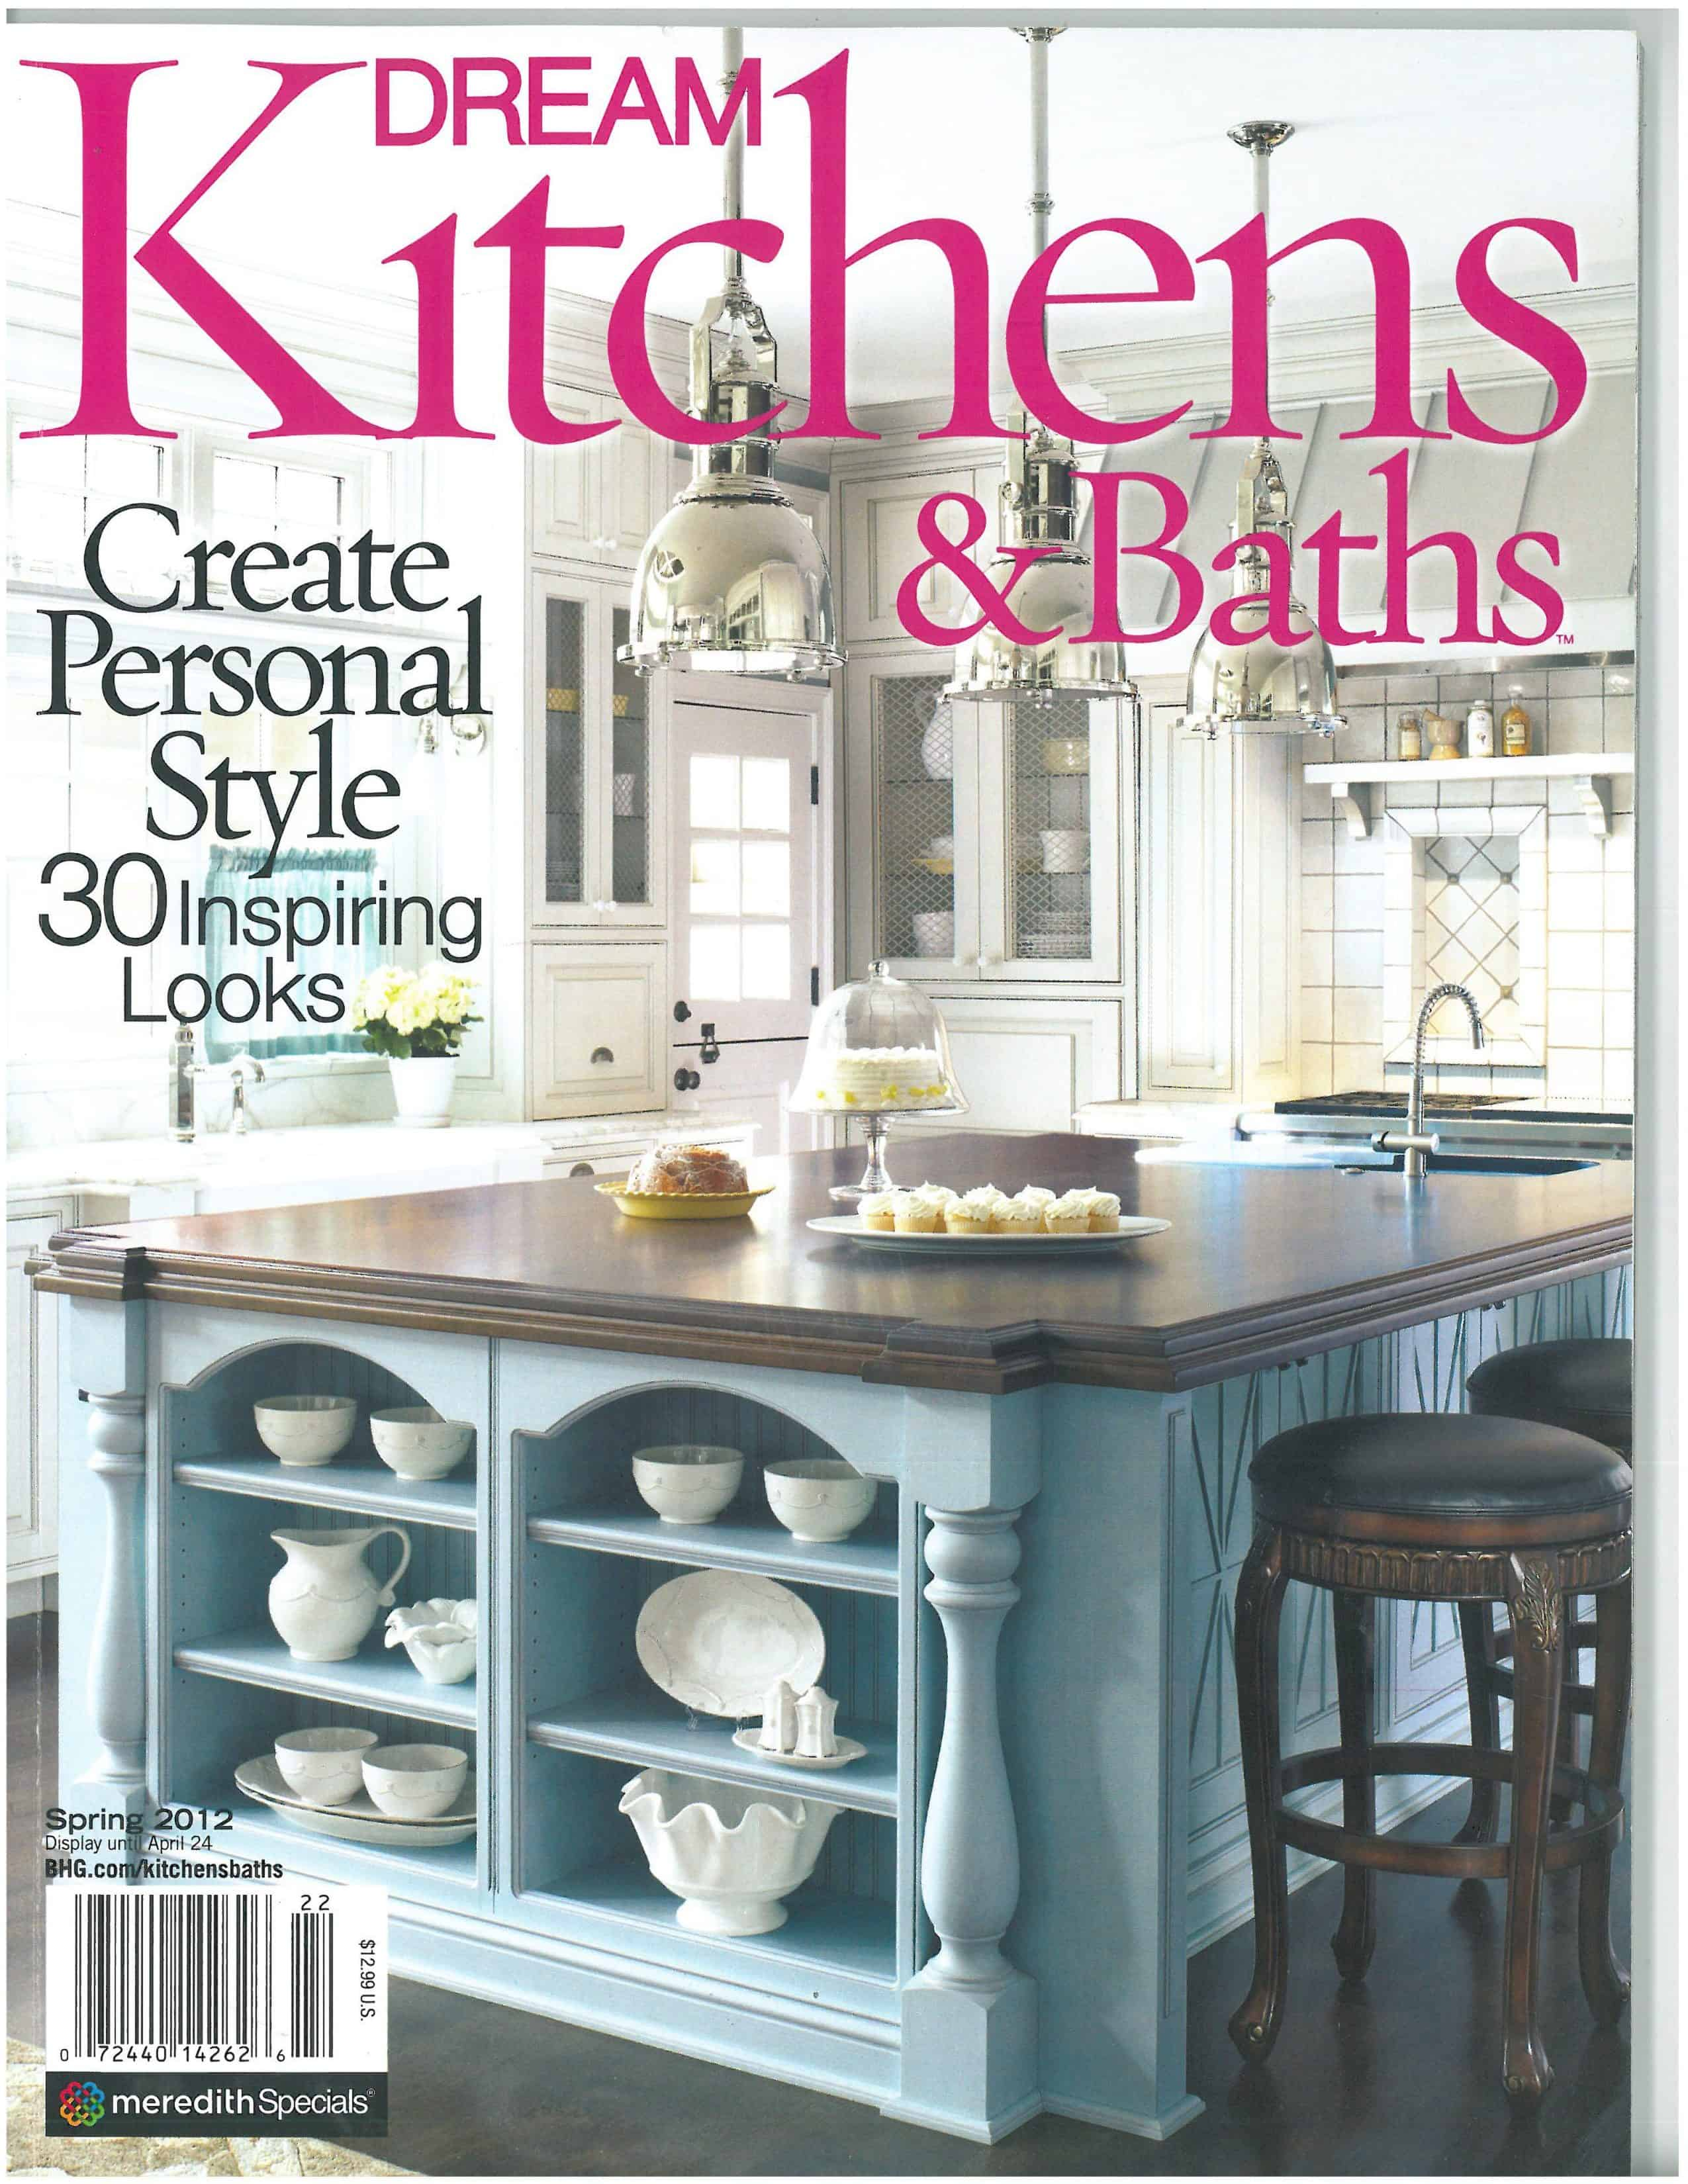 Better Homes and Gardens Dream Kitchens & Baths ...